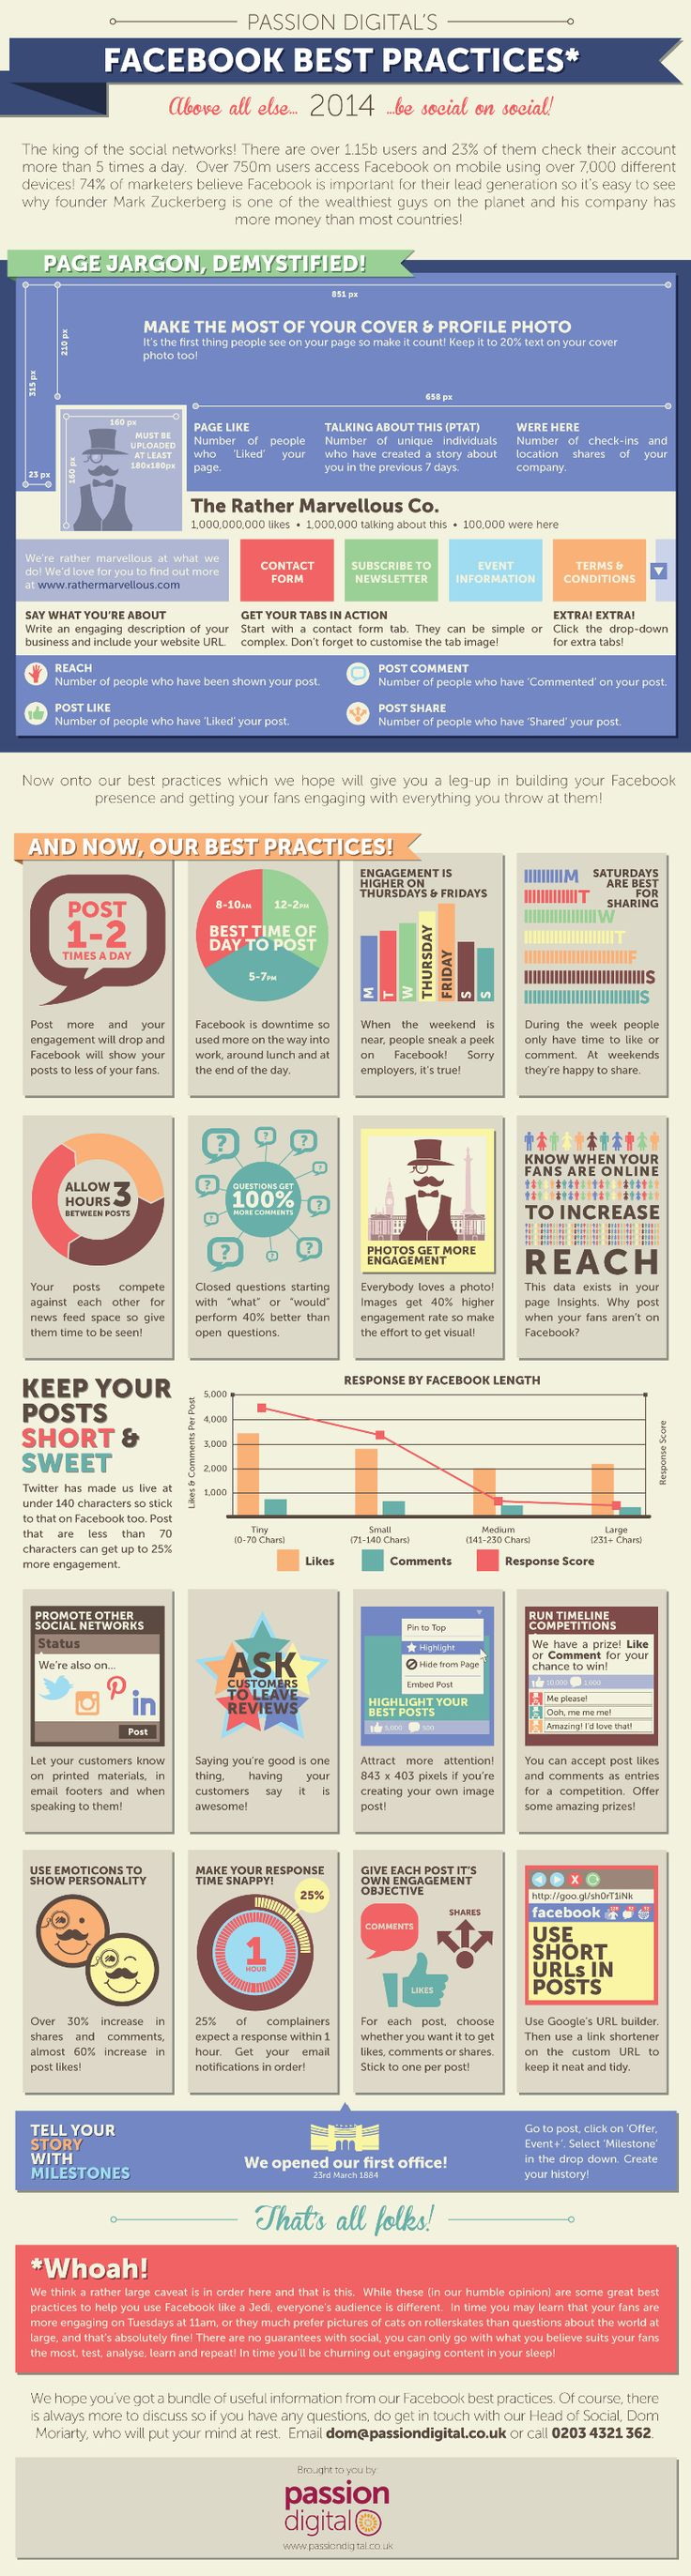 #Facebook Page Best Practices #infographic